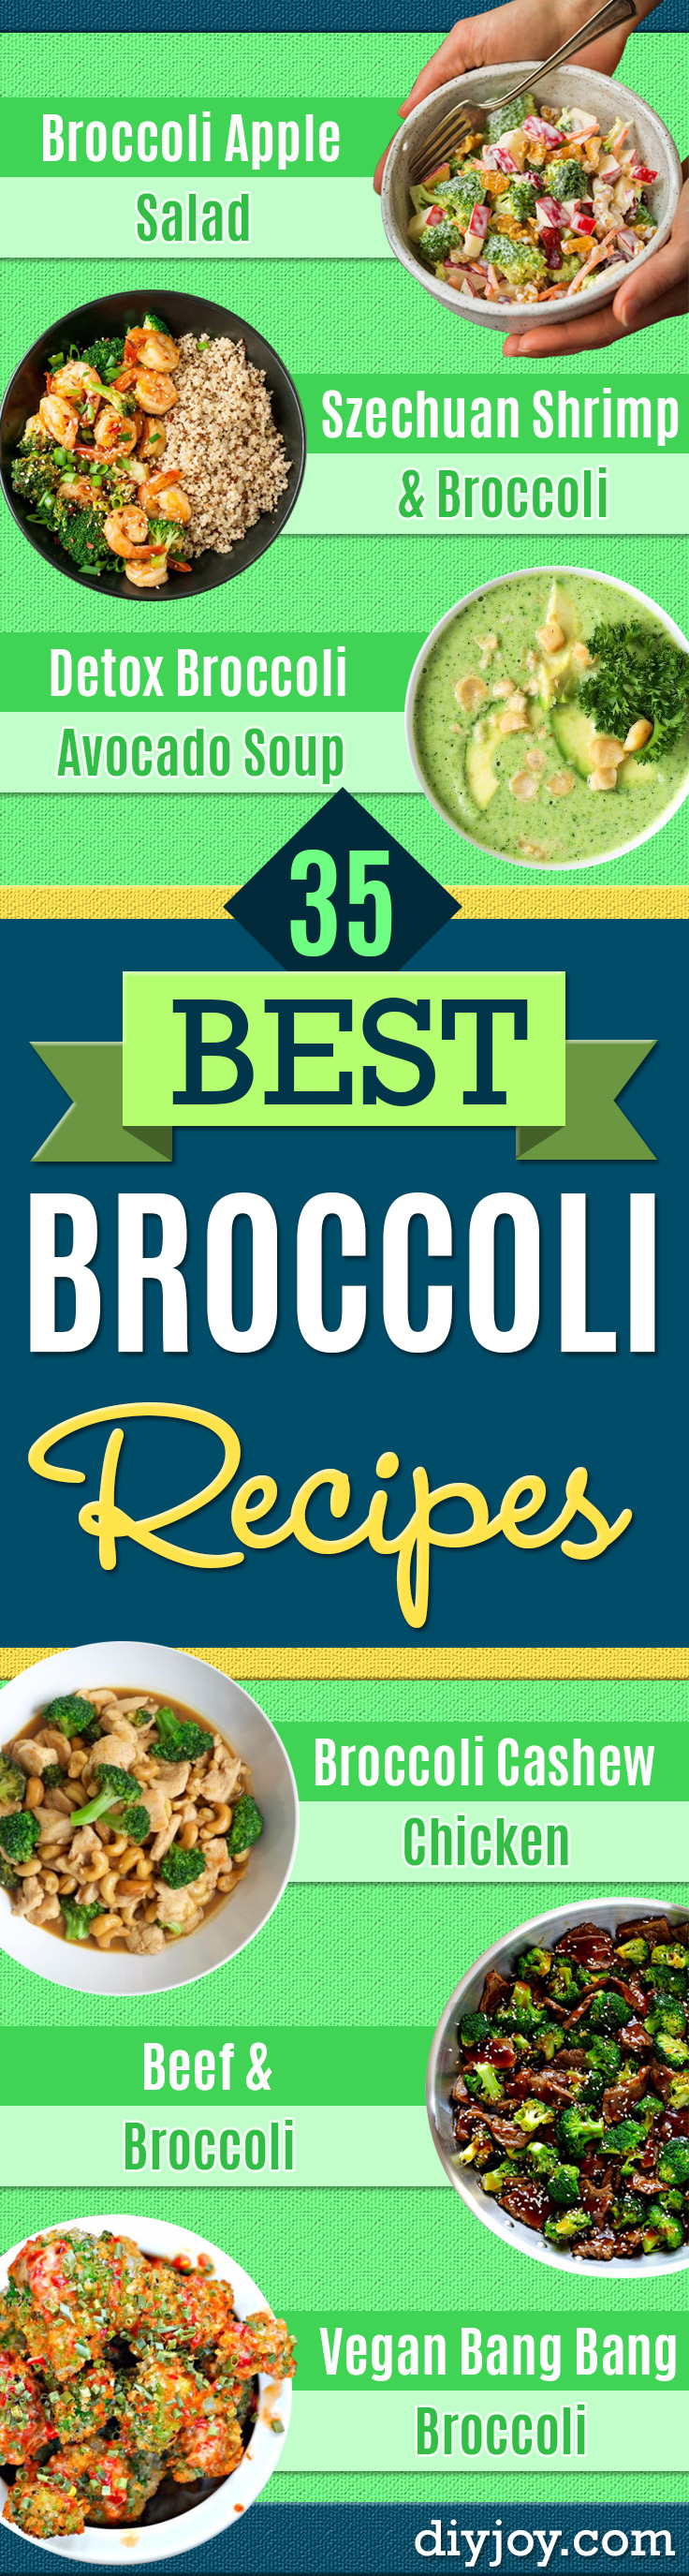 Best Broccoli Recipes - Recipe Ideas for Roasted, Steamed, Fresh or Frozen, Healthy, Cheesy, Soup, Salad, Casseroles and Side Dish Vegetables Made With Broccoli. Shrimp, Chicken, Pasta and Paleo Recipes. Easy Dinner, Lunch and Healthy Snacks for Kids and Adults - Homemade Food and Crafts by DIY JOY http://diyjoy.com/best-broccoli-recipes